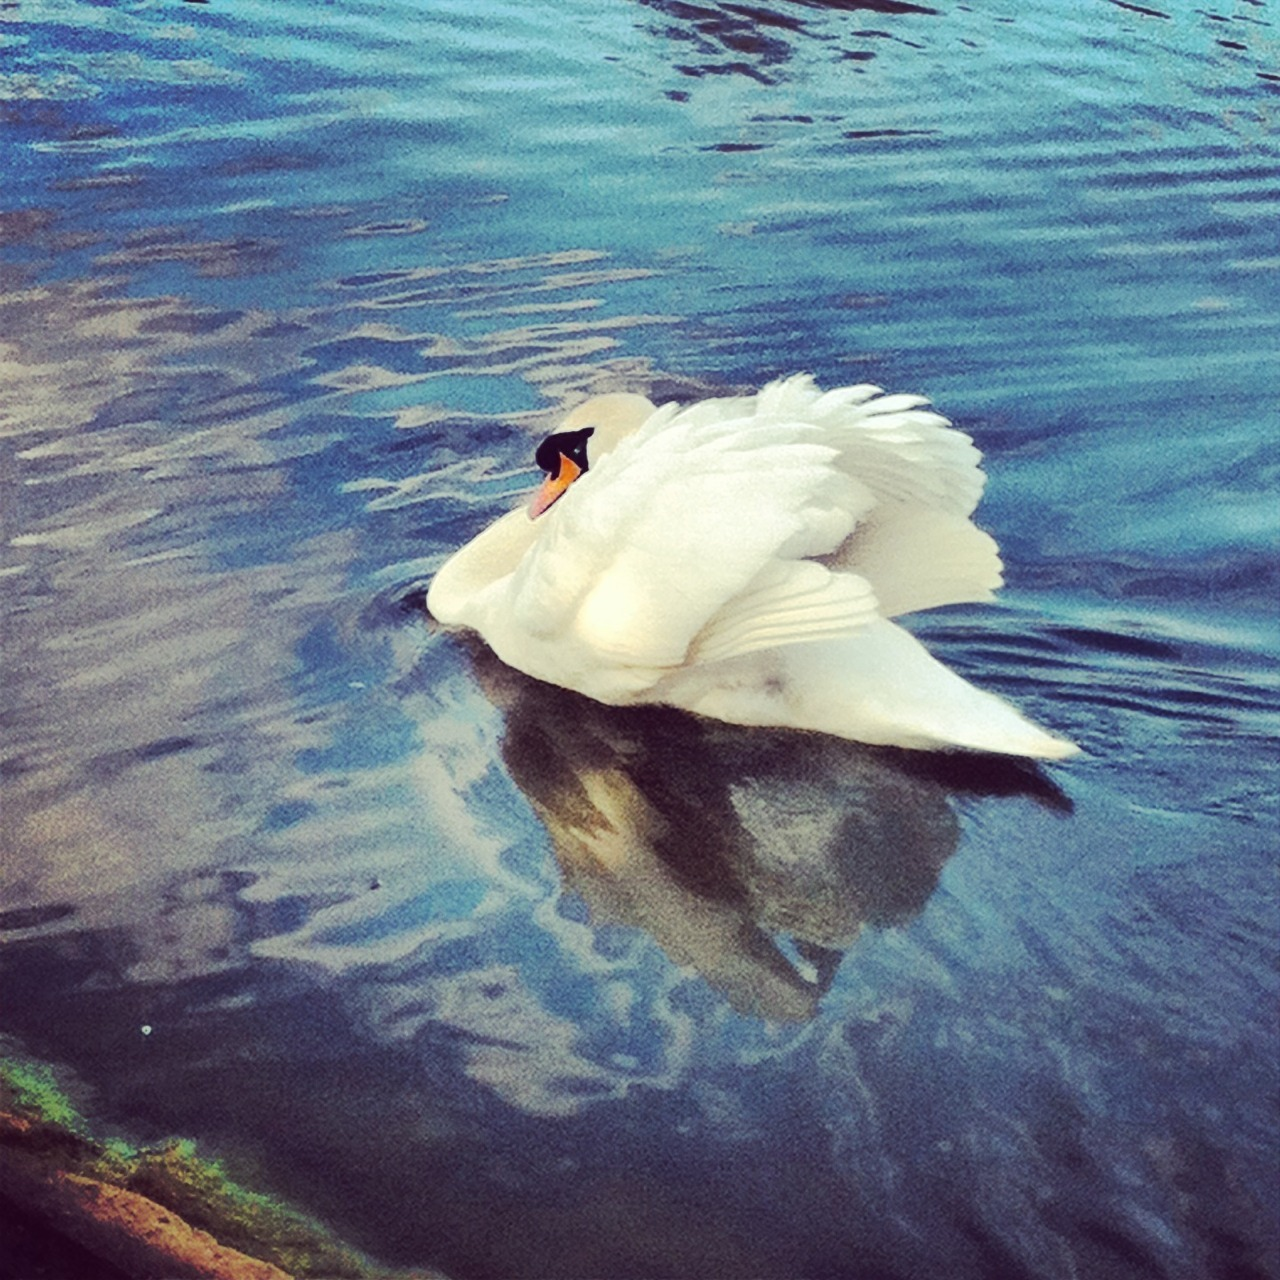 Swan is saltwell park looked fluffy